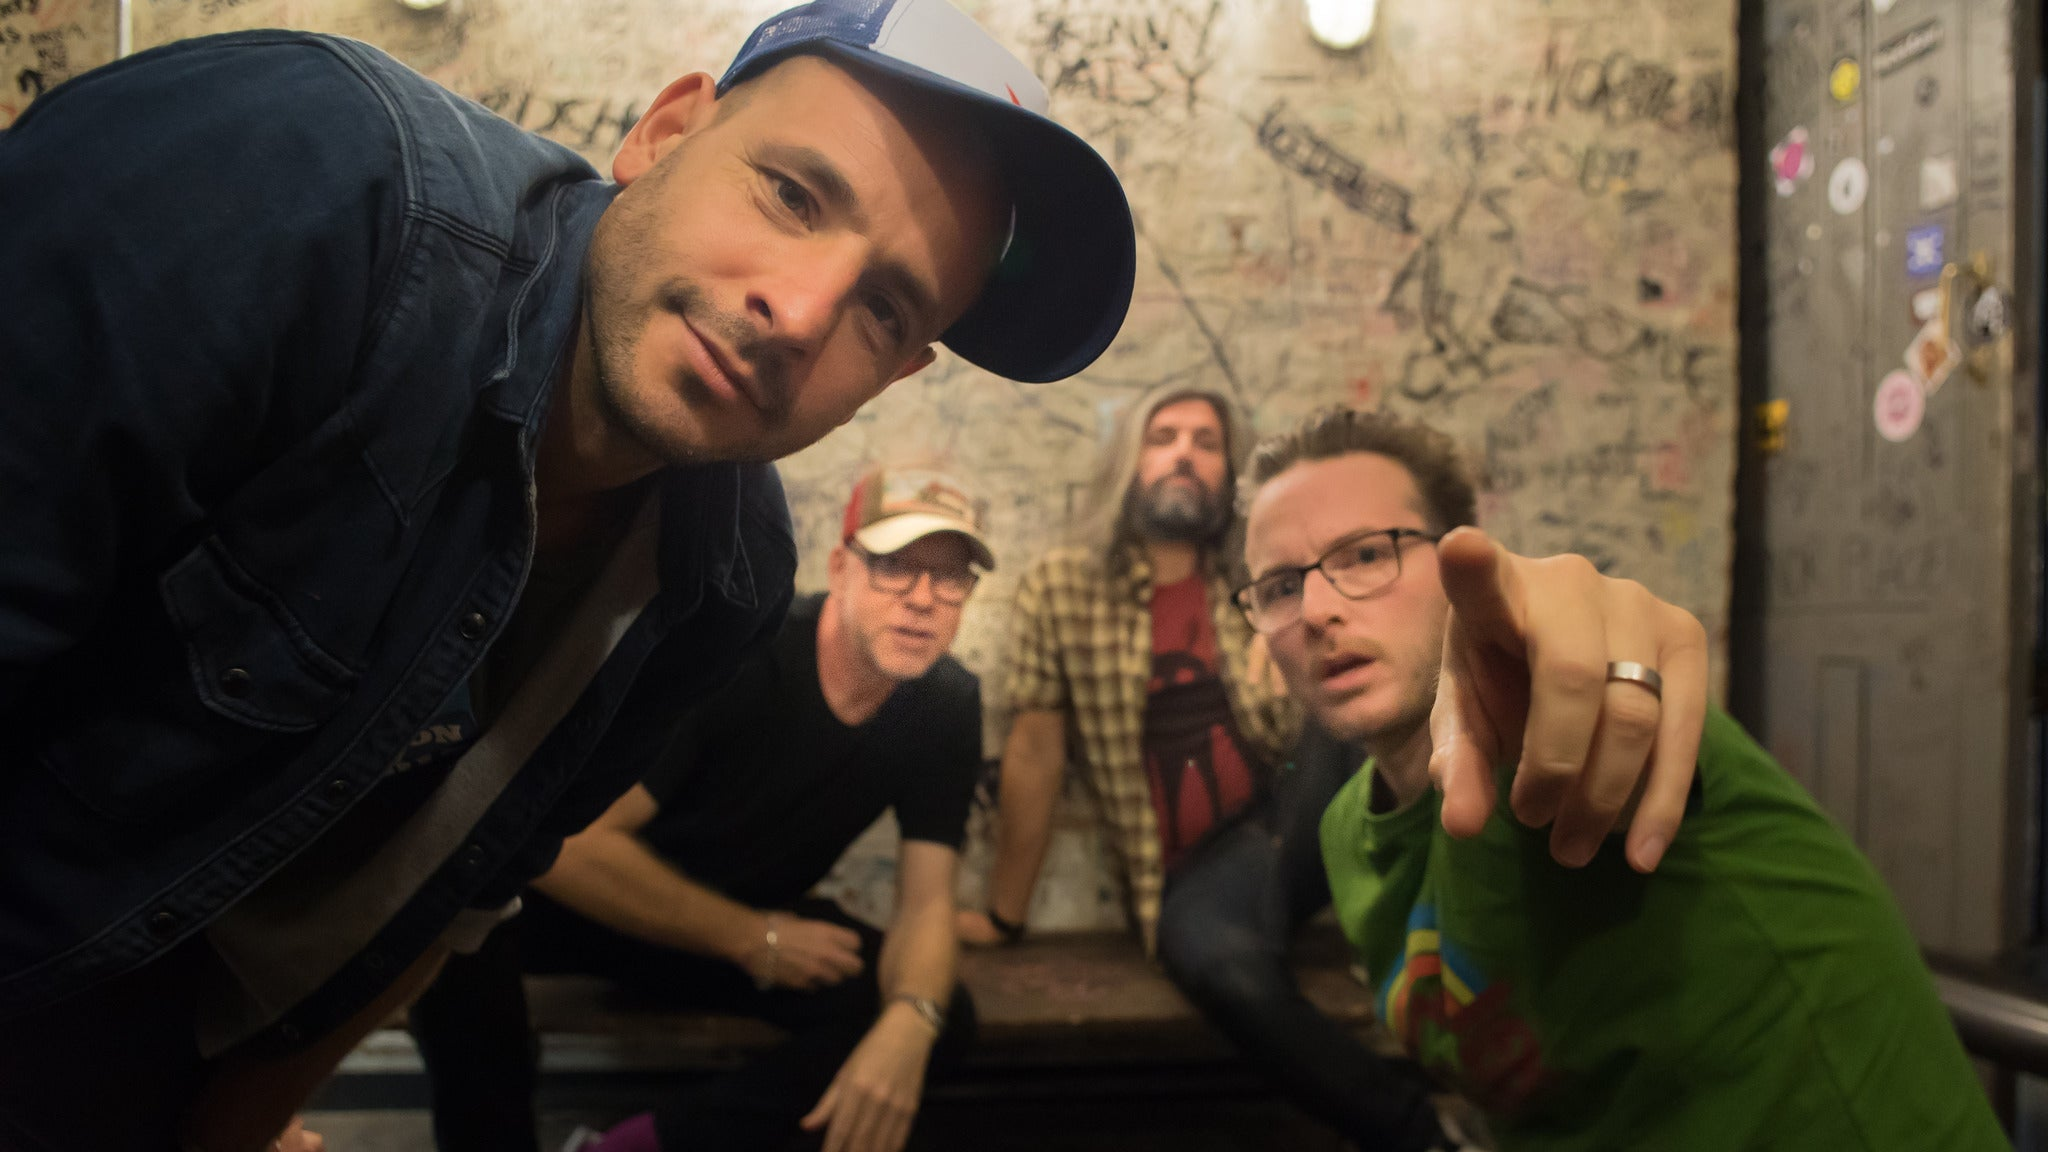 Turin Brakes - 20th Anniversary Of The Optimist LP tickets (Copyright © Ticketmaster)